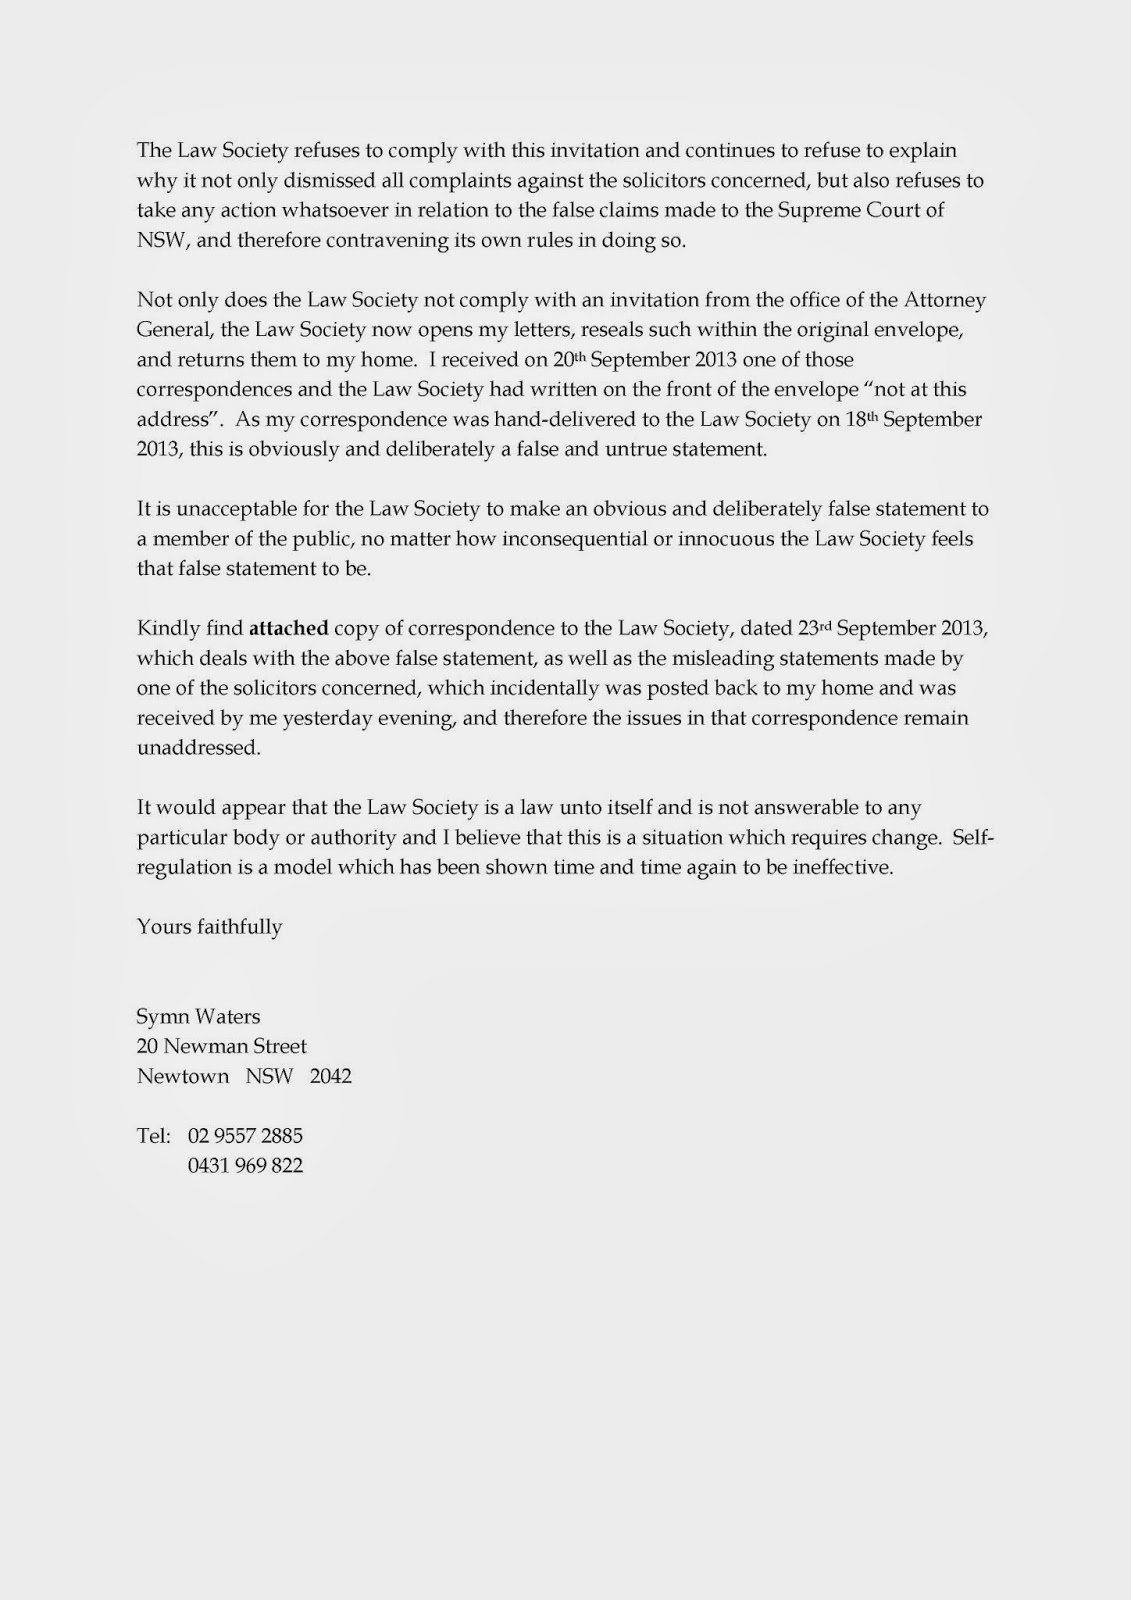 Inaction by the law society and the office of the legal services please see my letter to the law society of nsw of 30th october 2013 while i am clearly unable to specifically claim that corrupt activity is taking place spiritdancerdesigns Image collections